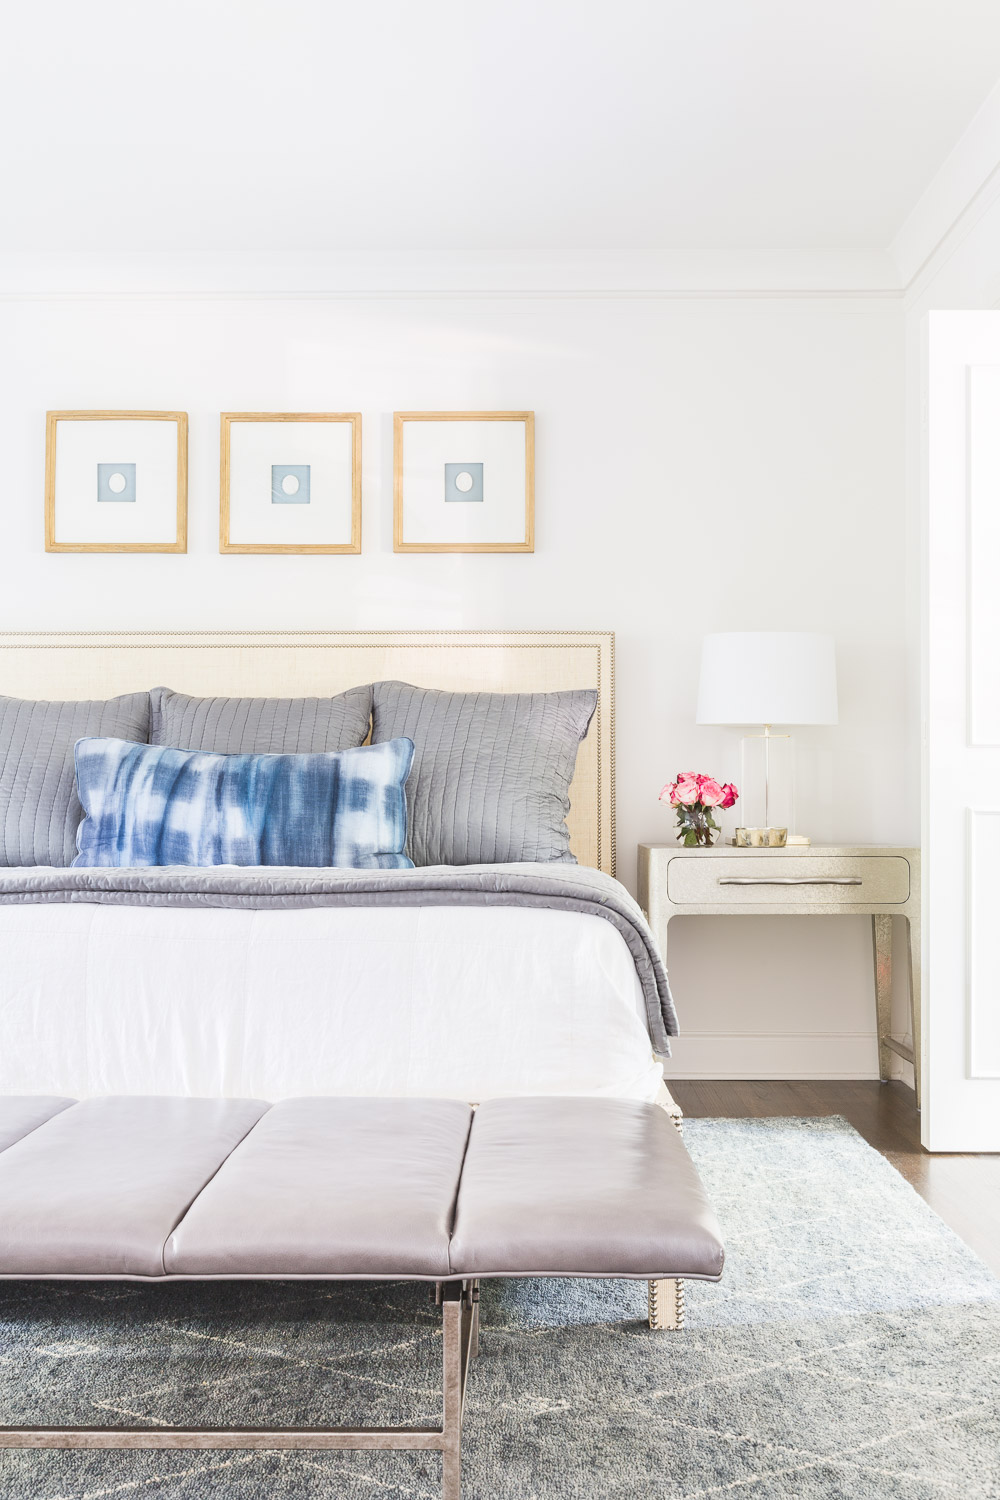 Good Housekeeping - 55 Decor Ideas To Transform Your Master Bedroom Into A Haven